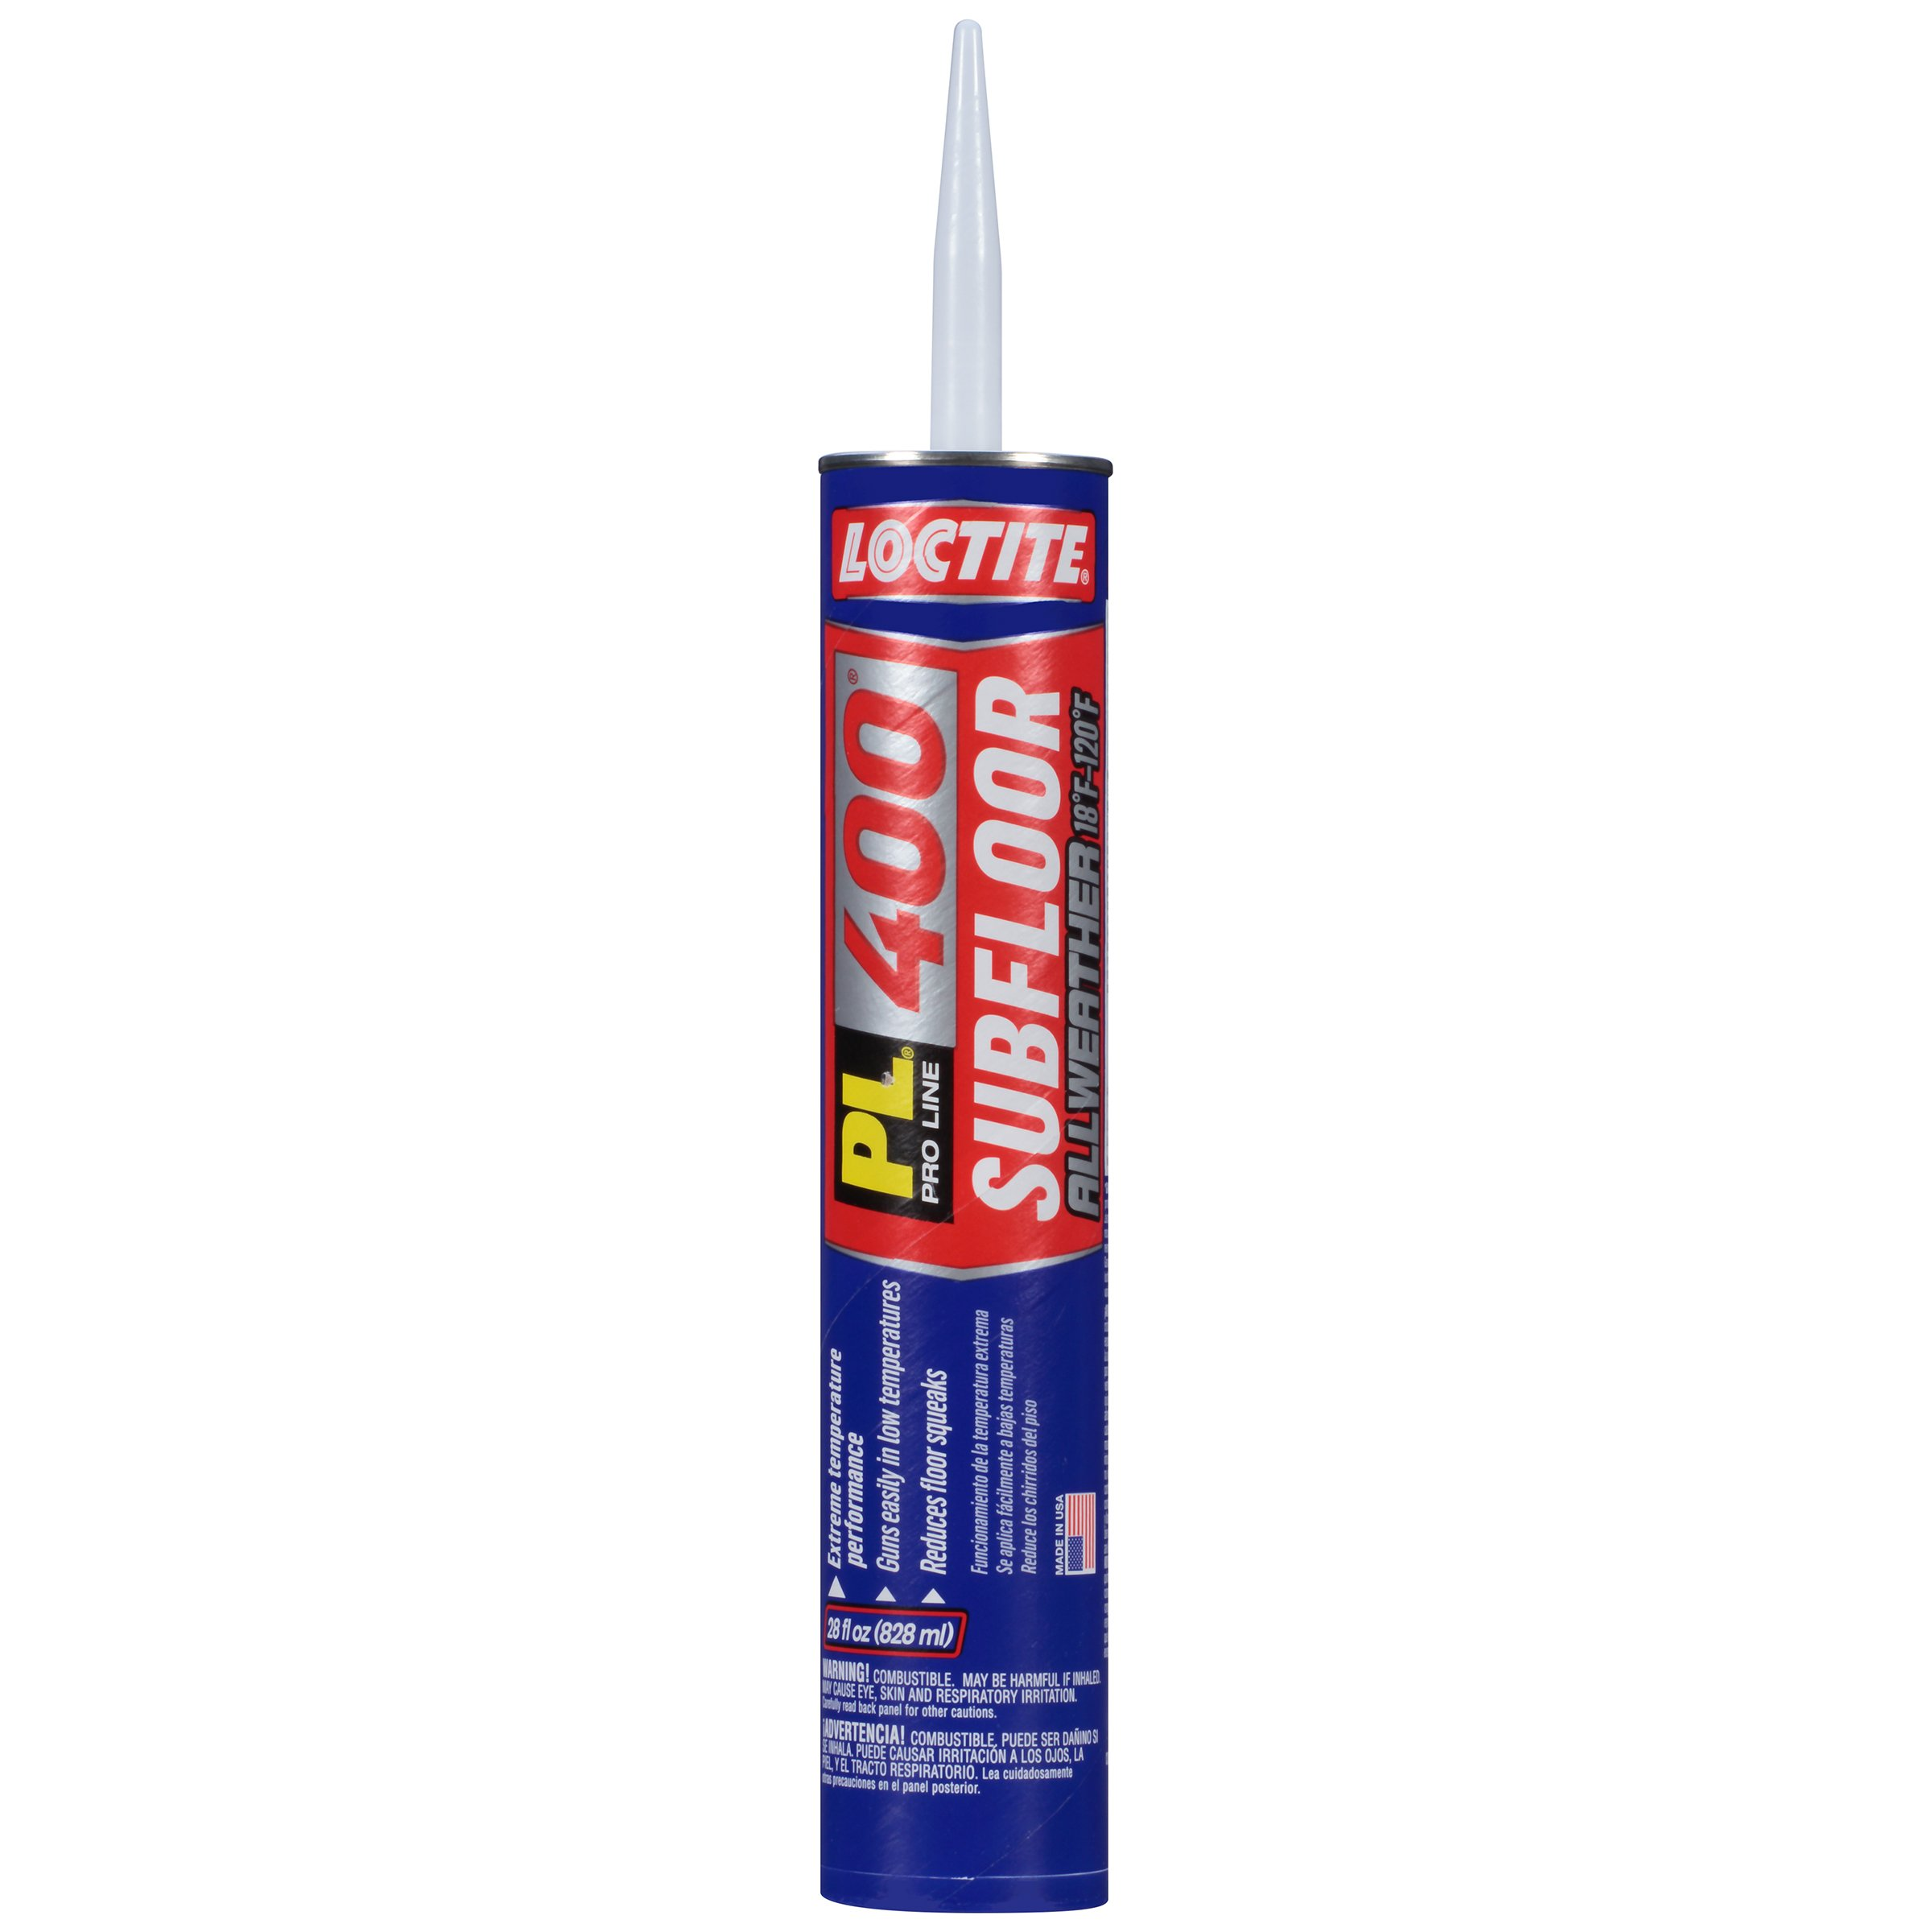 Loctite PL 400 Subfloor All Weather Construction Adhesive, 28 Ounce Cartridge, Tan, 12-Pack (2136221-12) by Loctite (Image #1)